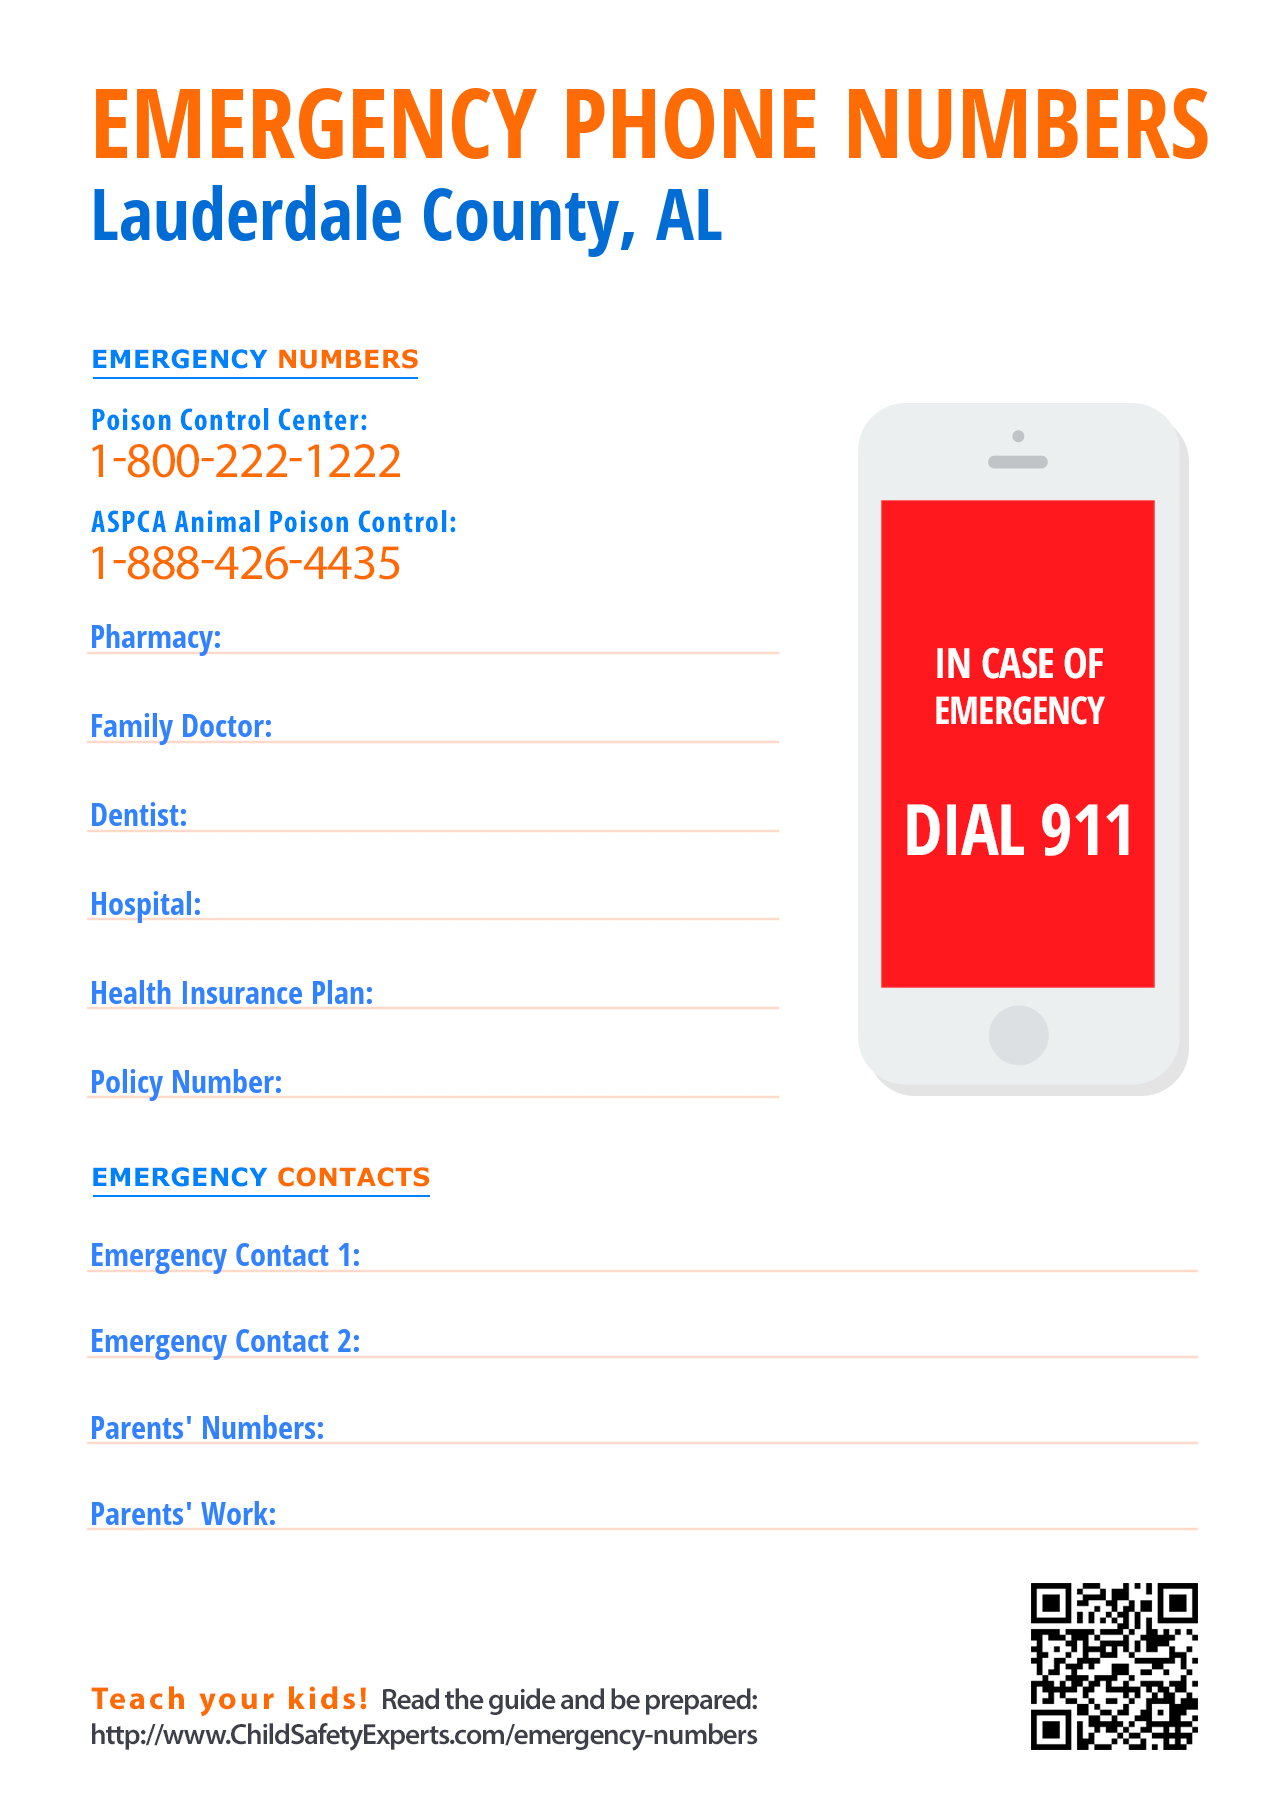 Important emergency phone numbers in Lauderdale County, Alabama